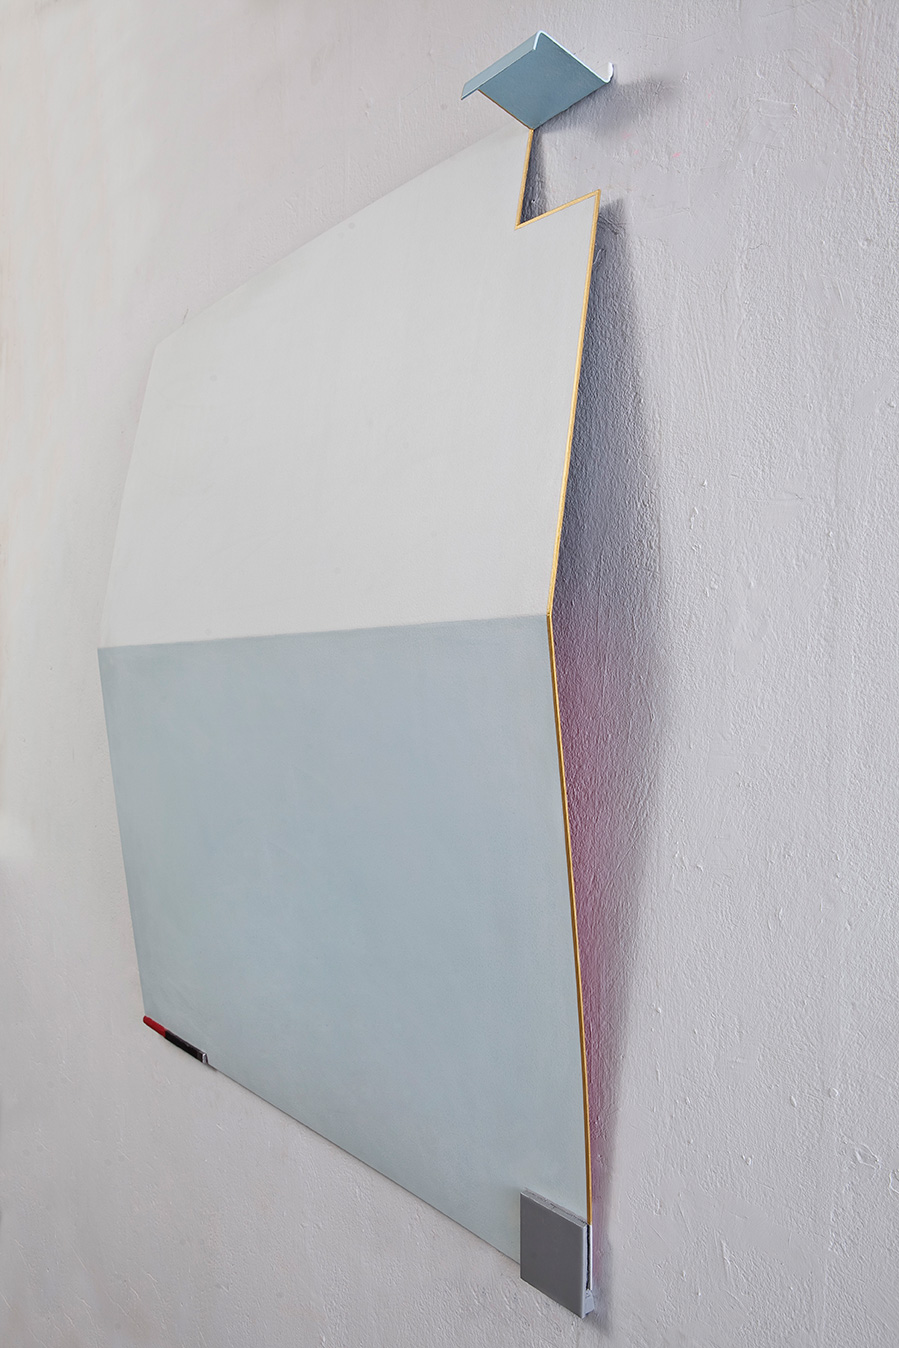 11.%22Untitled%22, 2015, acrylic and epoxi color on metal sheet,110x100cm_side B.jpg